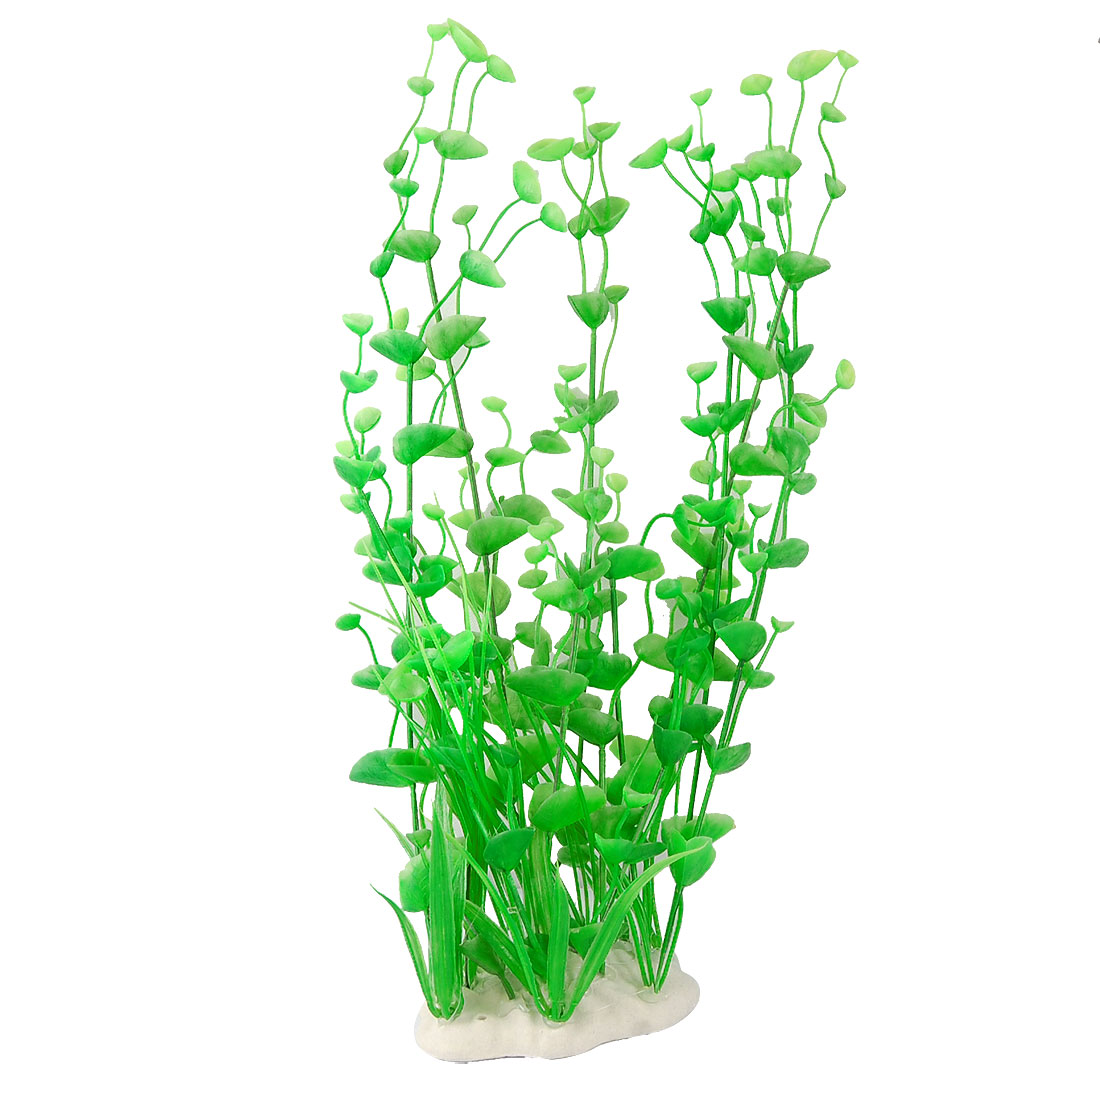 Fish Tank Simulated Green Plastic Plant Grass Ornament 15.3""